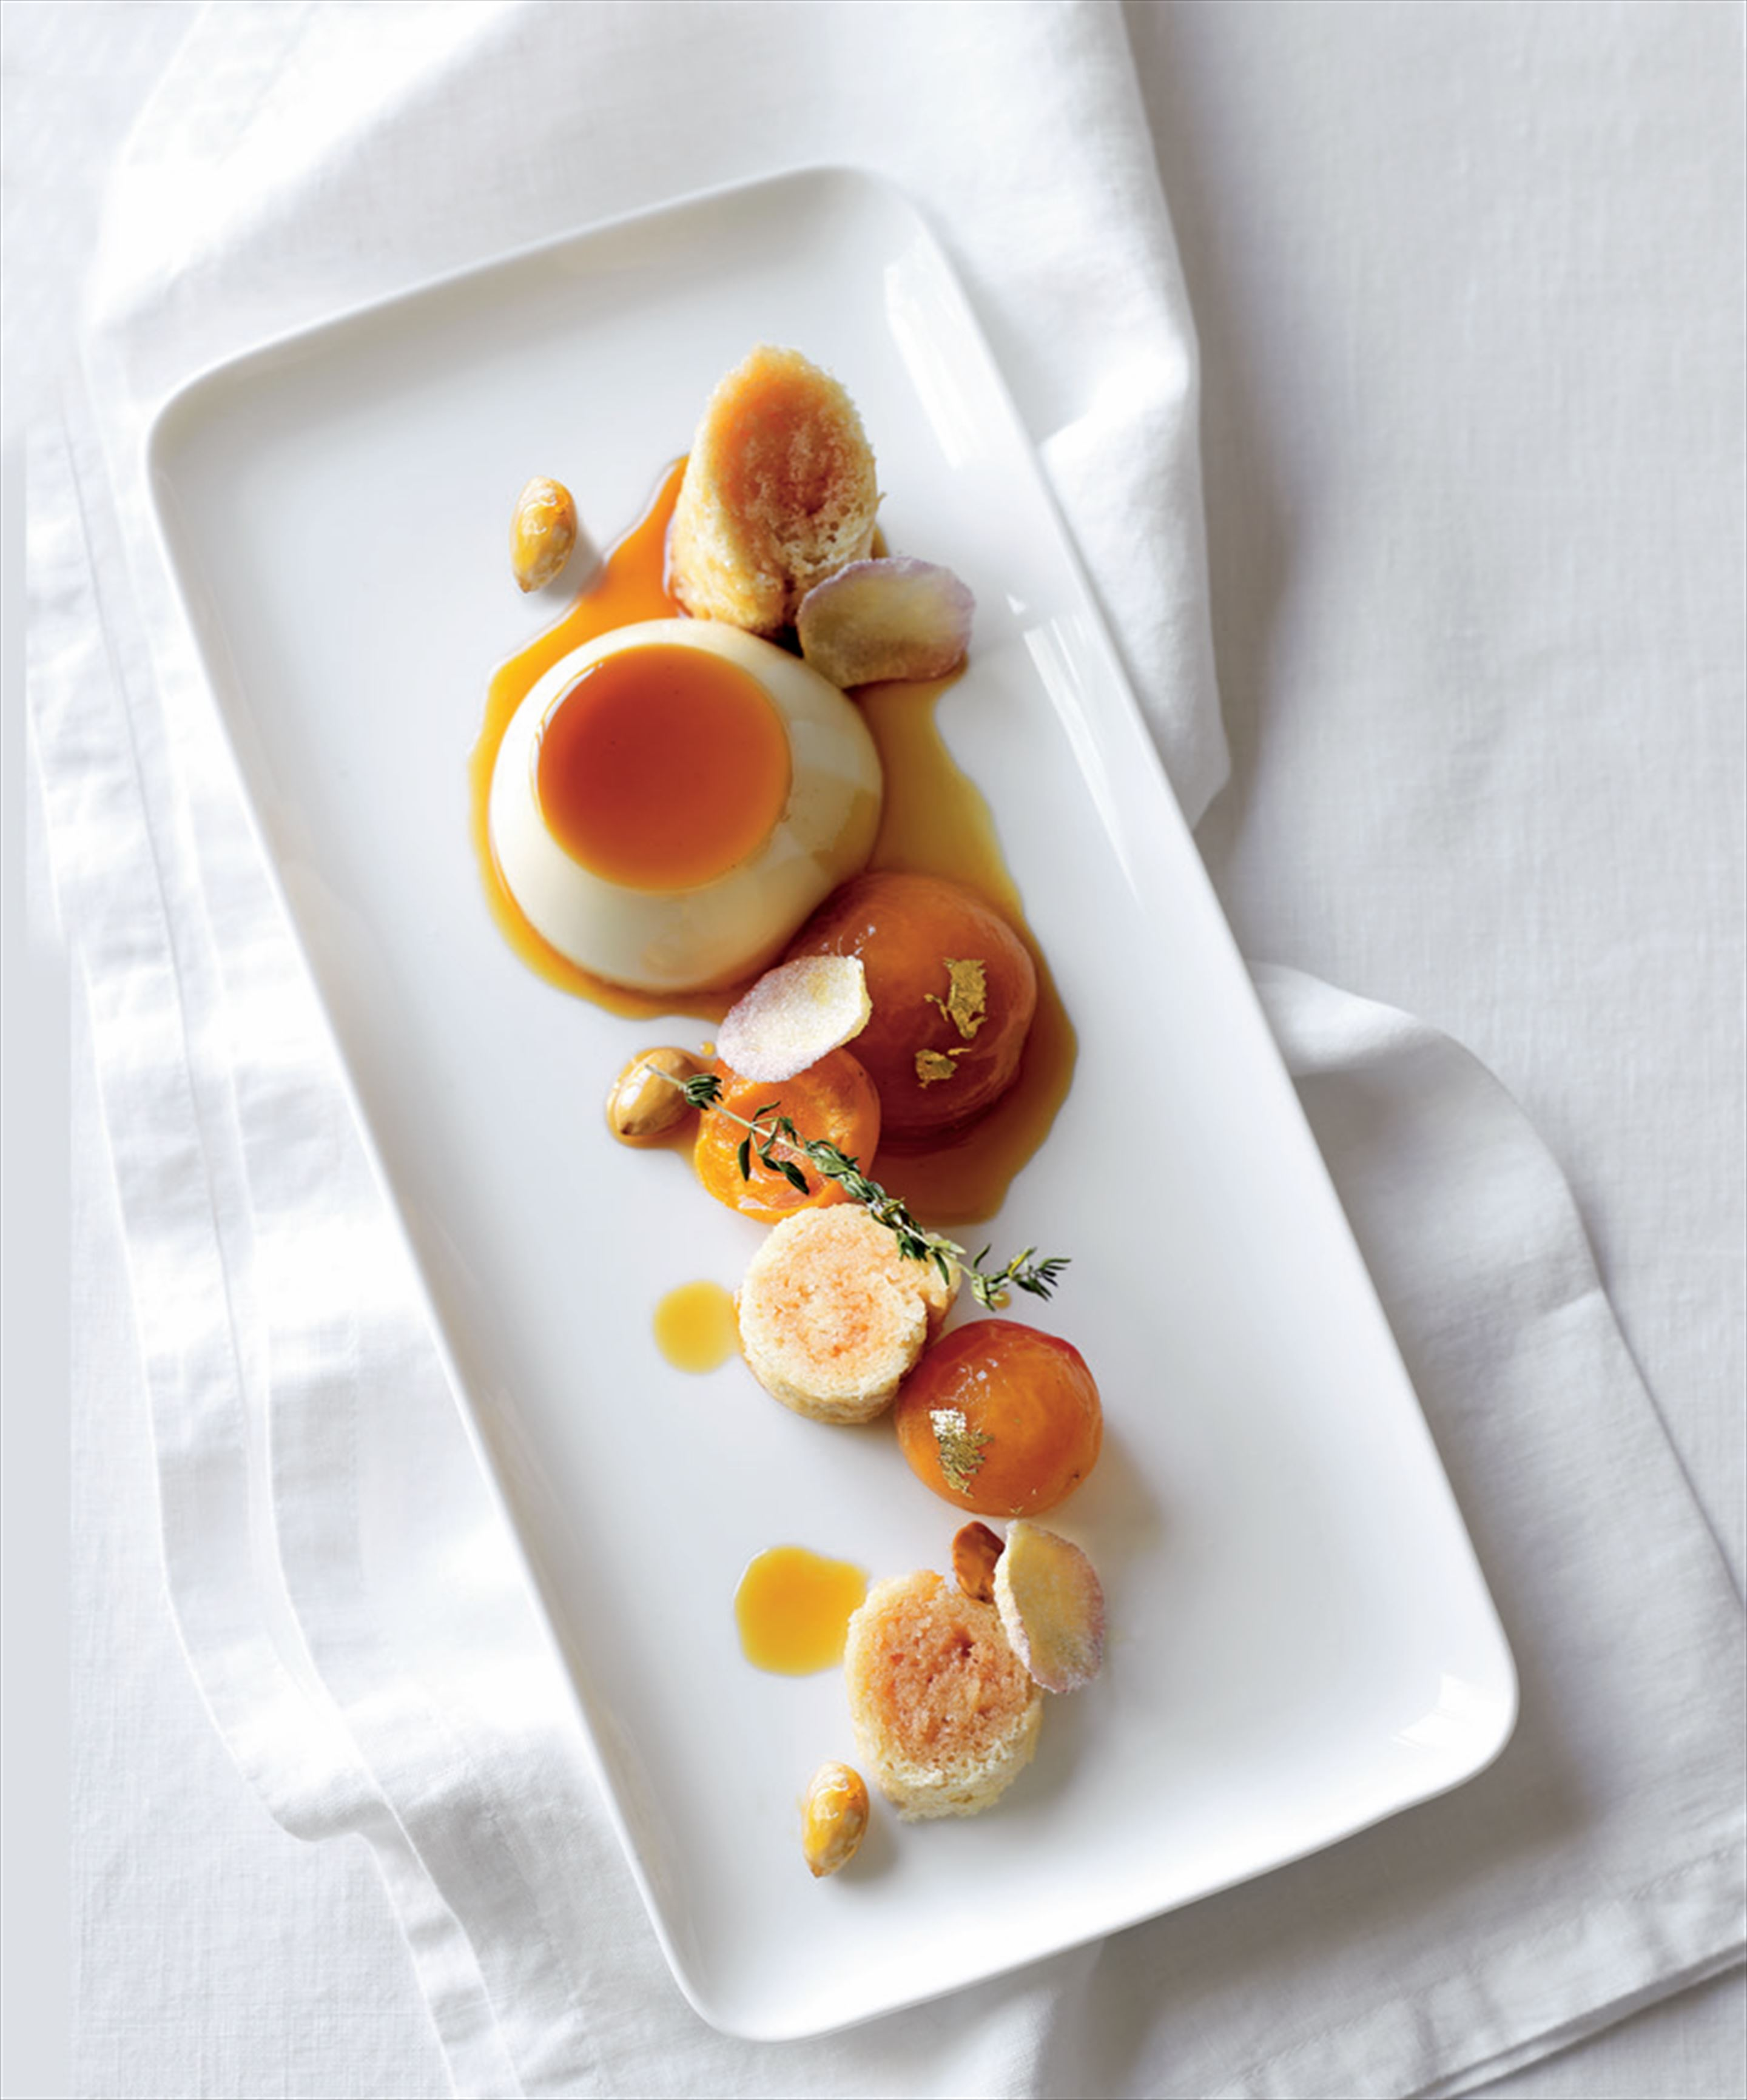 Sauternes crème caramel, thyme-roasted apricots and almond roly-poly